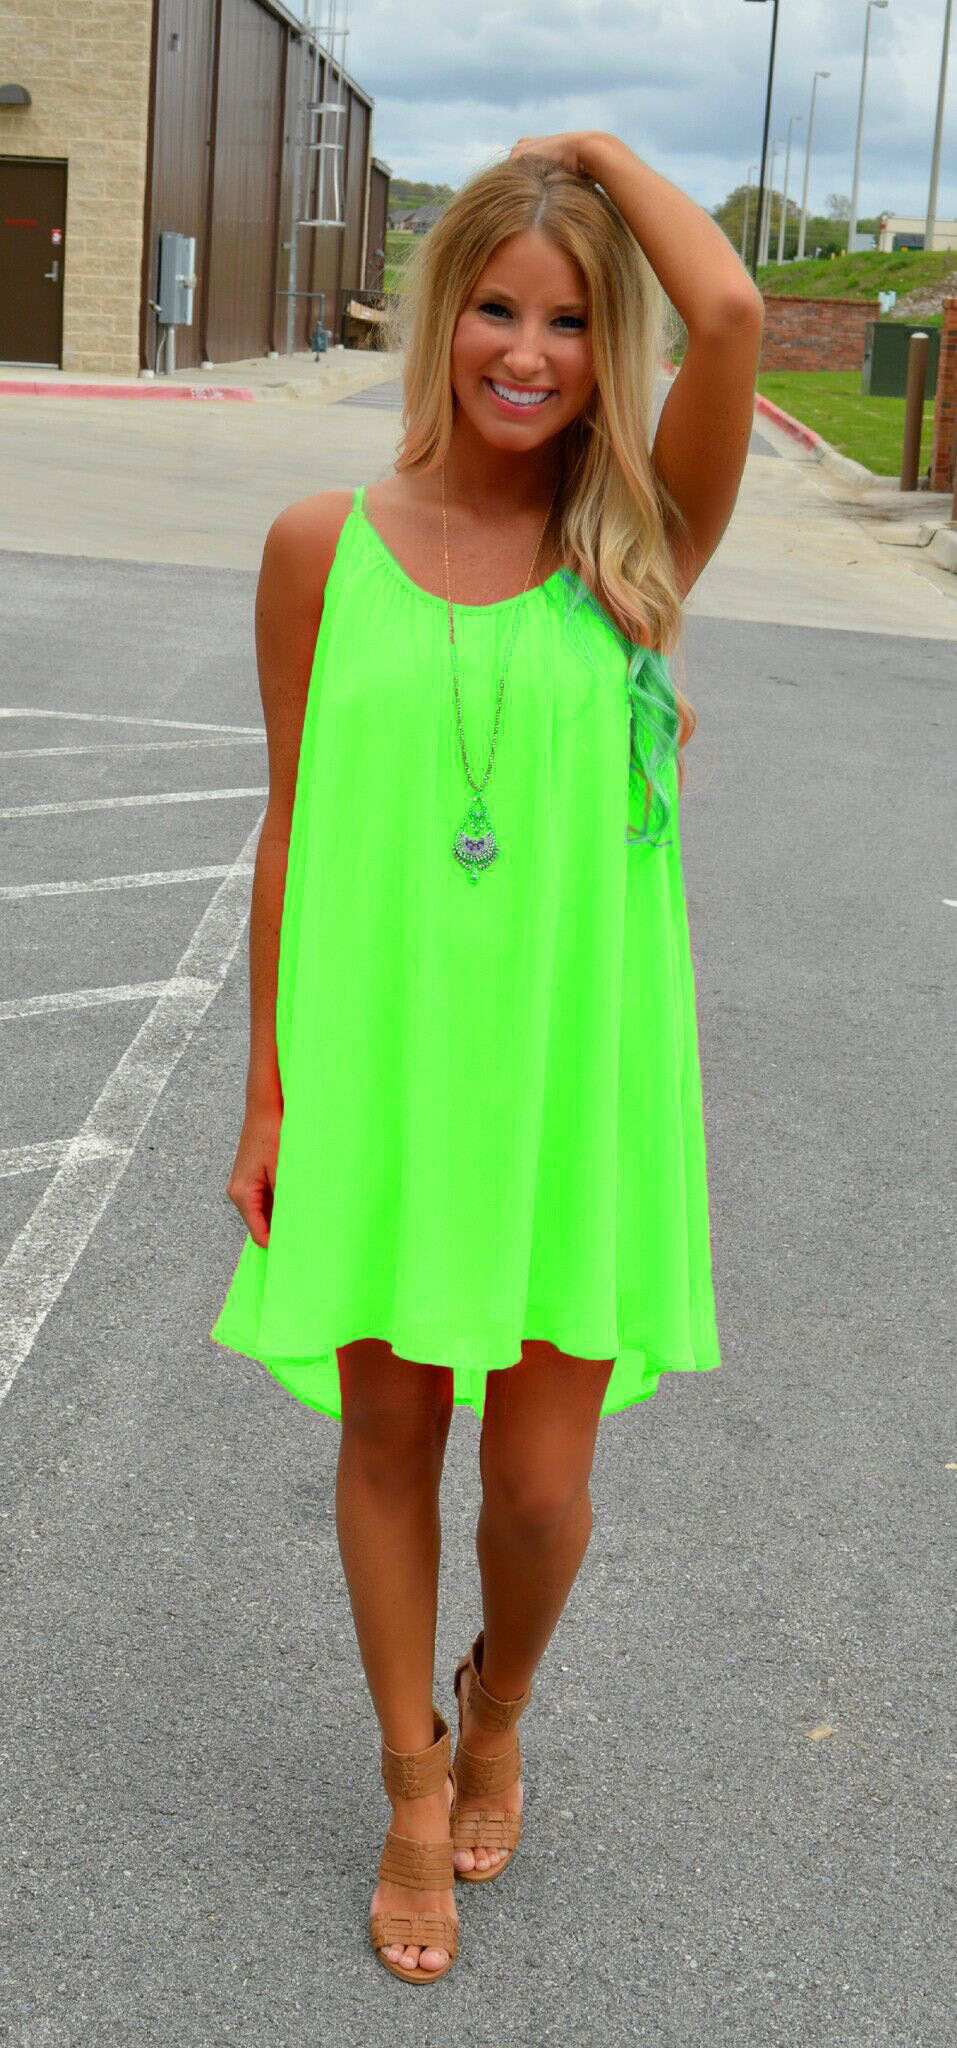 F2485-2 WOMENS CHIFFON STRAPPY SLEEVELESS BEACH MINI LOOSE CASUAL DRESS